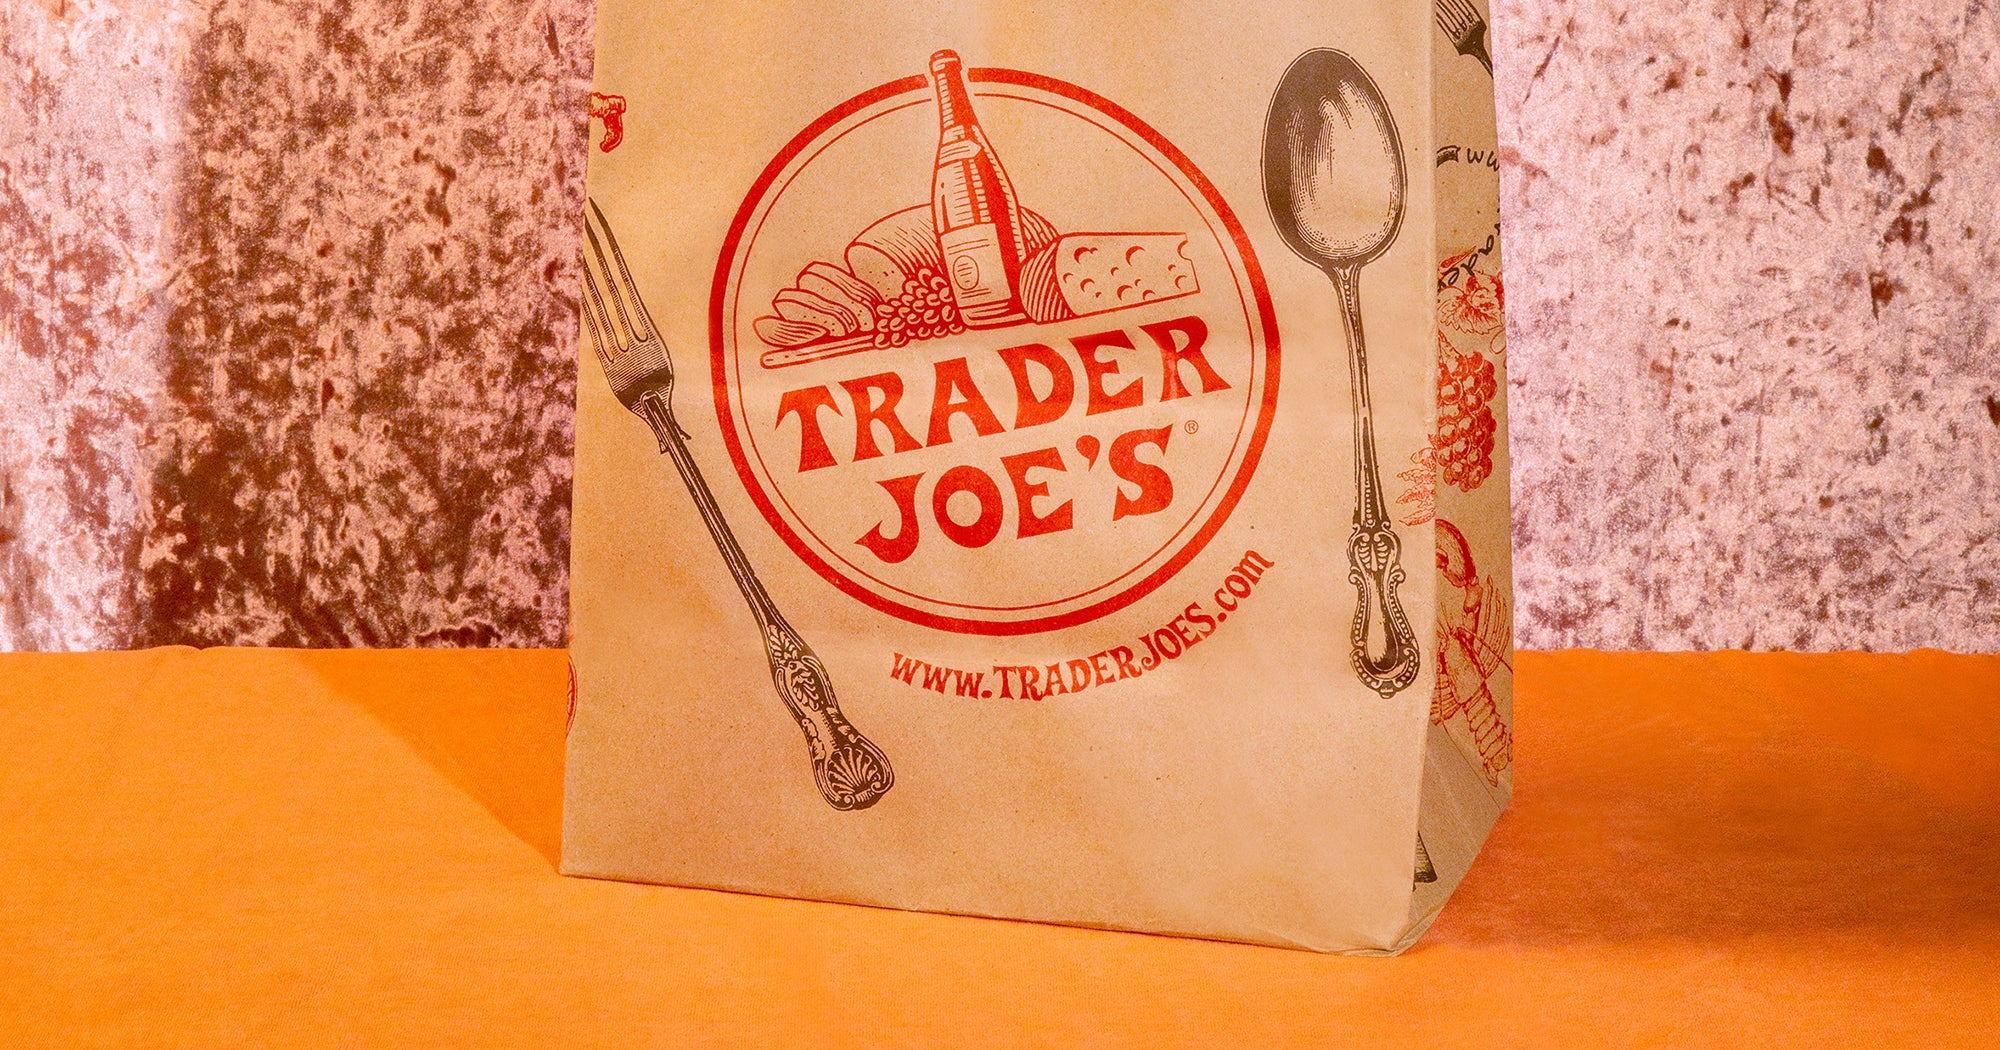 Best Trader Joes Products 2020.Trader Joes Fall Foods 2019 New Products In Stores Now